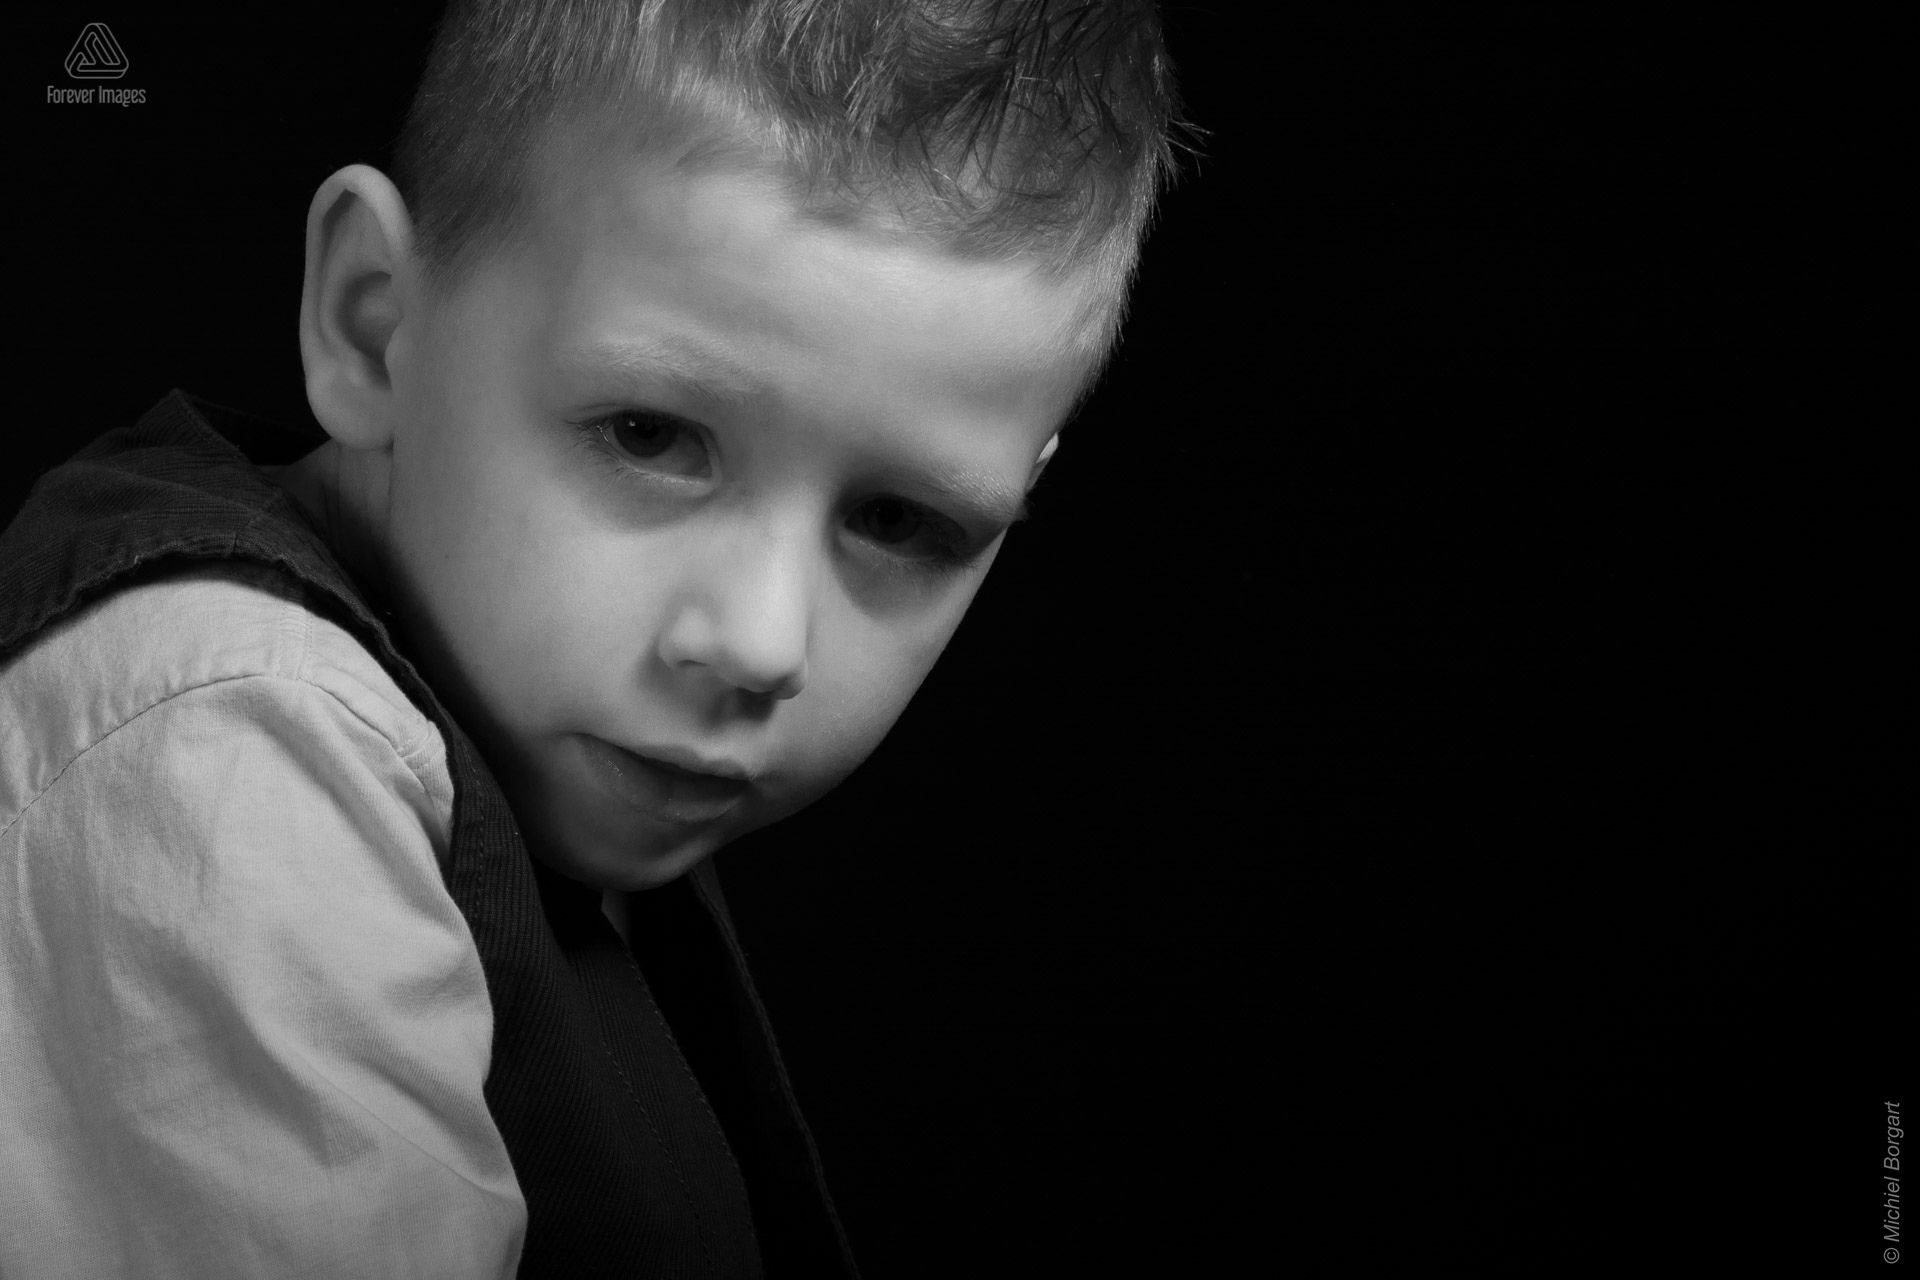 Child photo in black and white young who looks very vulnerable | Noah | Portrait Photographer Michiel Borgart - Forever Images.